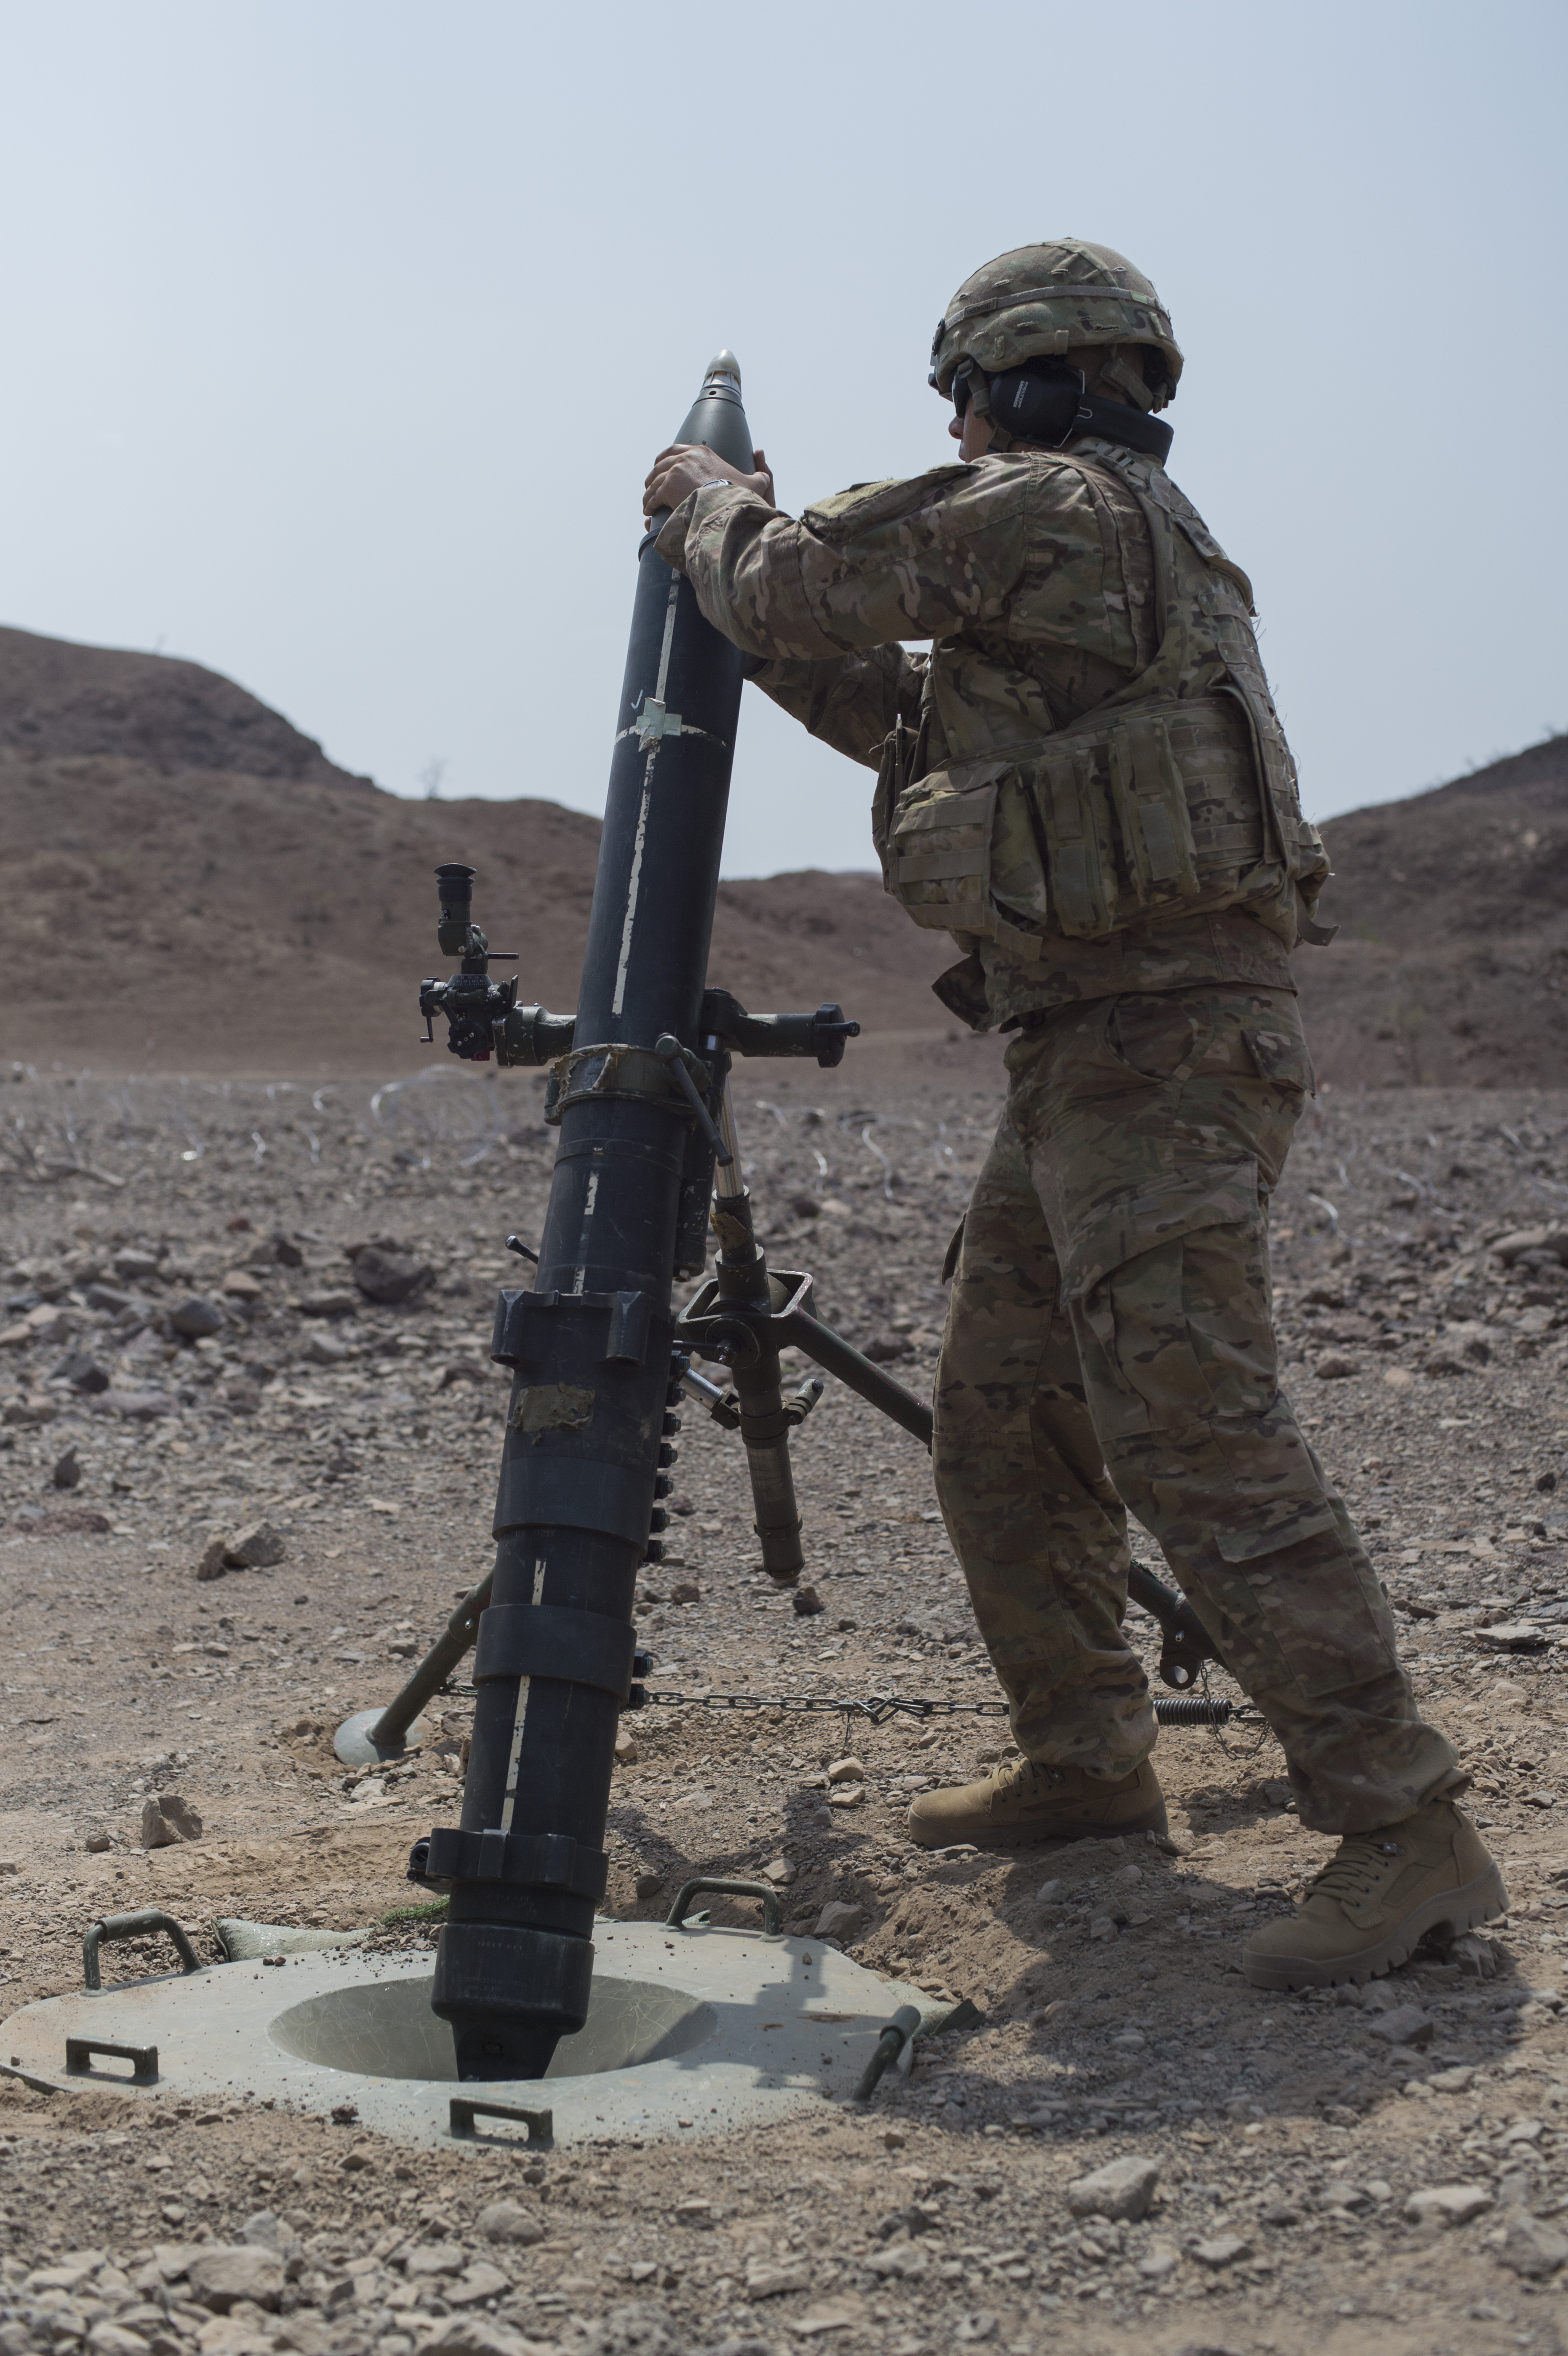 U.S. Army Spc. Alan George, 1st Battalion, 124th Infantry regiment, Bravo Company, hangs a mortar round before releasing it for deployment Aug. 8, 2016, at Arta, Djibouti. The process of 'hanging' a mortar involves holding the mortar round in the launch tube and, once the command of fire is announced, dropping the round in the tube for discharge. The 1-124, a component of Combined Joint Task Force-Horn of Africa, is deployed from Cocoa, Fla., to perform security operations in the region. (U.S. Air Force Air Force photo by Staff Sgt. Eric Summers Jr./Released)